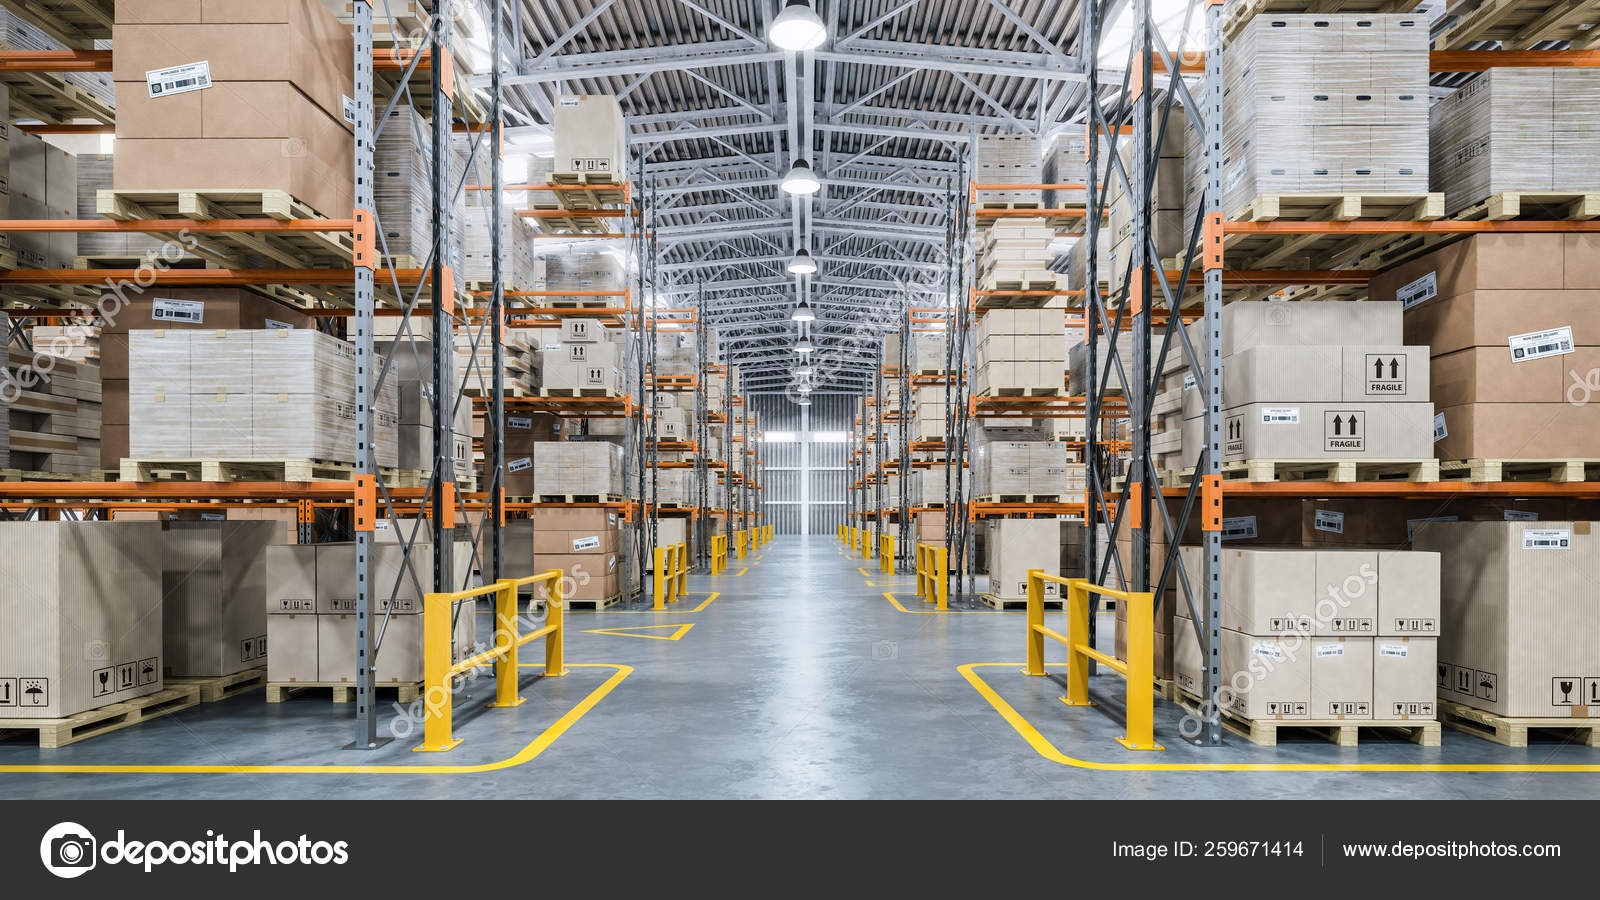 ᐈ Warehouse Stock Backgrounds Royalty Free Warehouse Backgrounds Photos Download On Depositphotos